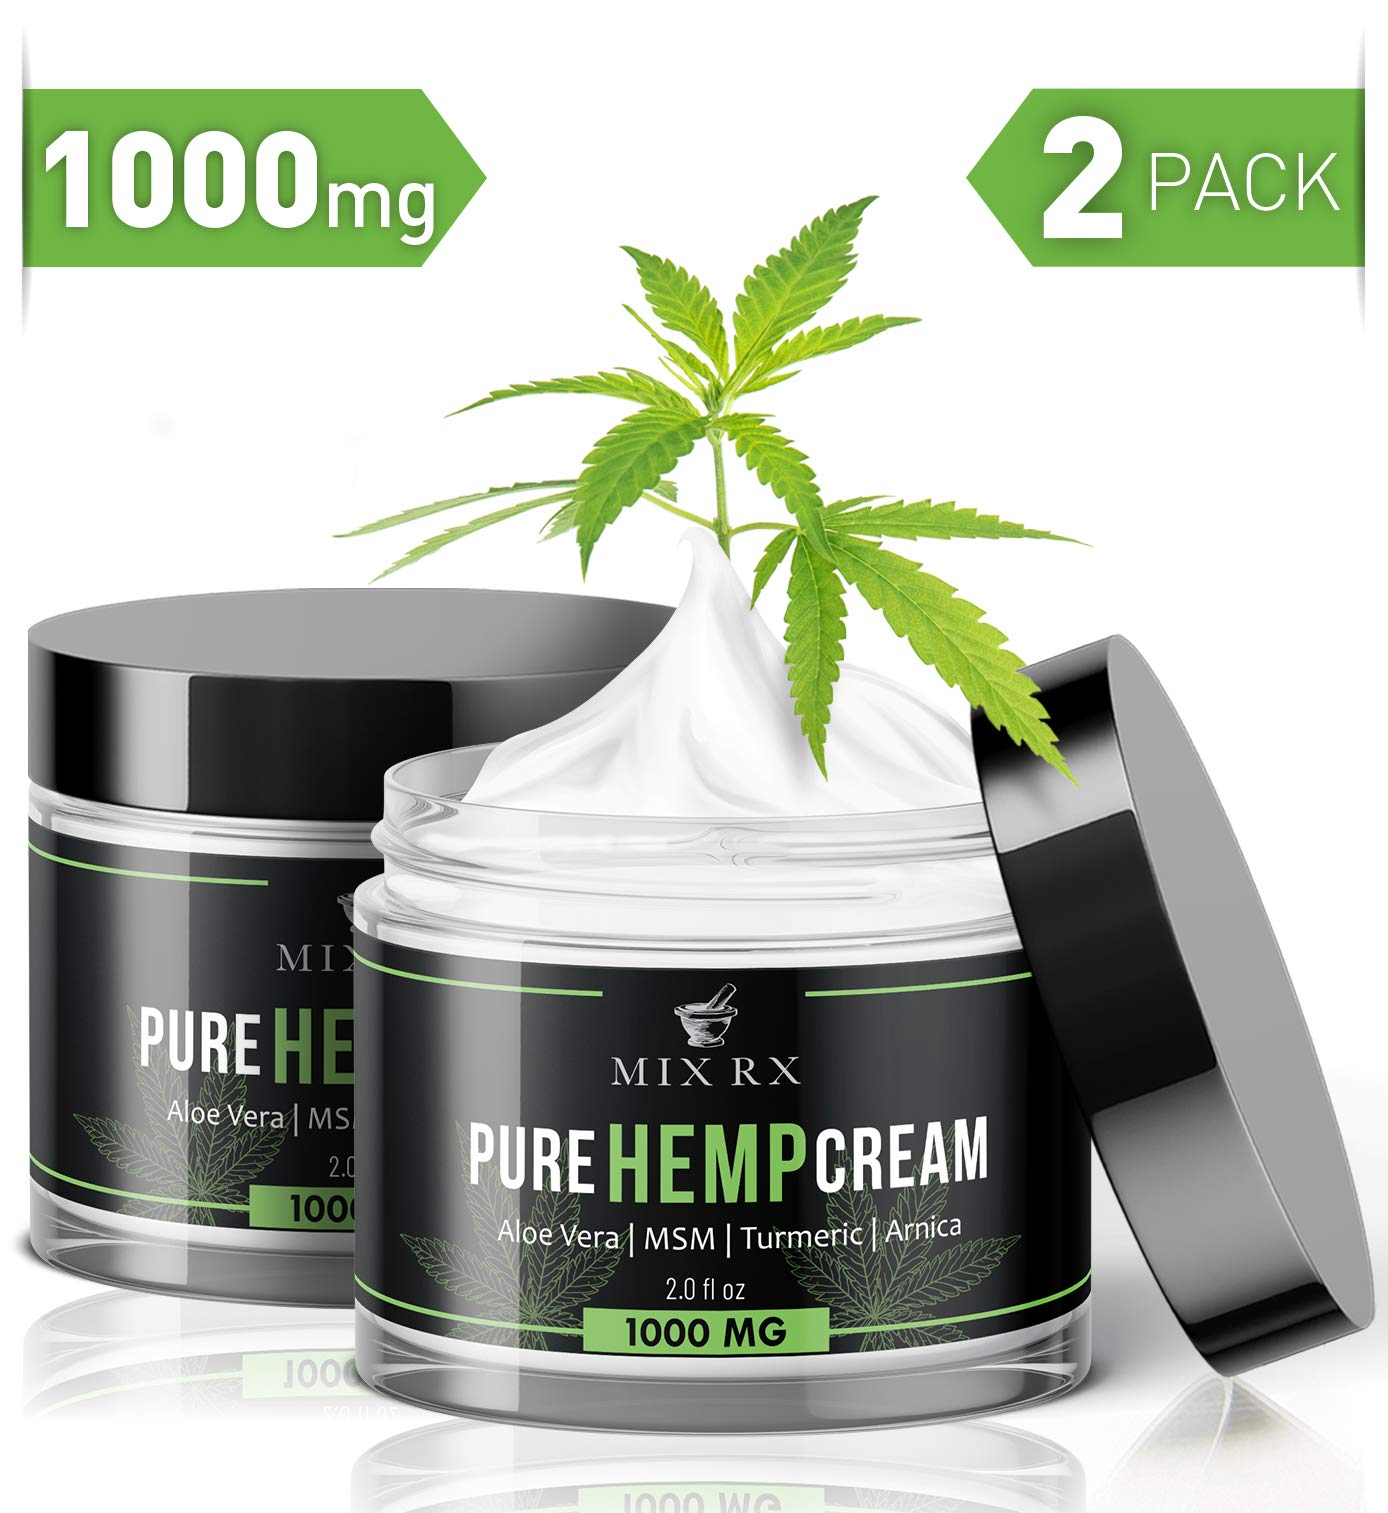 (2 Pack | 4oz) Hemp Cream for Pain Relief Helps Carpal Tunnel, Arthritis Back Knee Joint Muscle Lotion (1000mg) - Anti Inflammatory Hemp Oil Cream w Turmeric, MSM, Arnica, Vitamin A C D E - Hemp Salve by Mix Rx